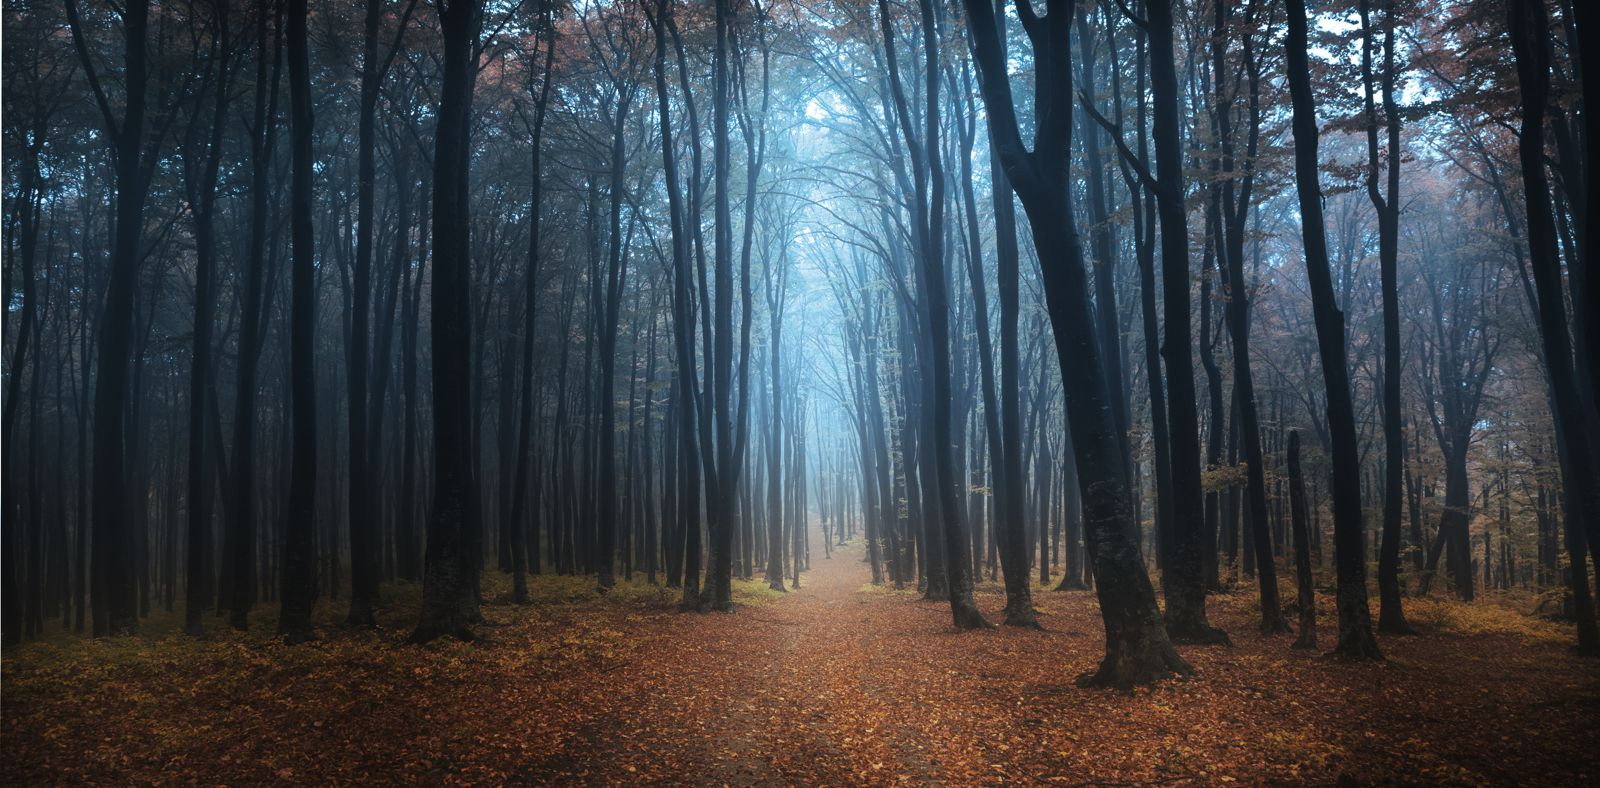 7 Magical Photos That Will Make You Want To Visit The Black Forest In Germany (6)